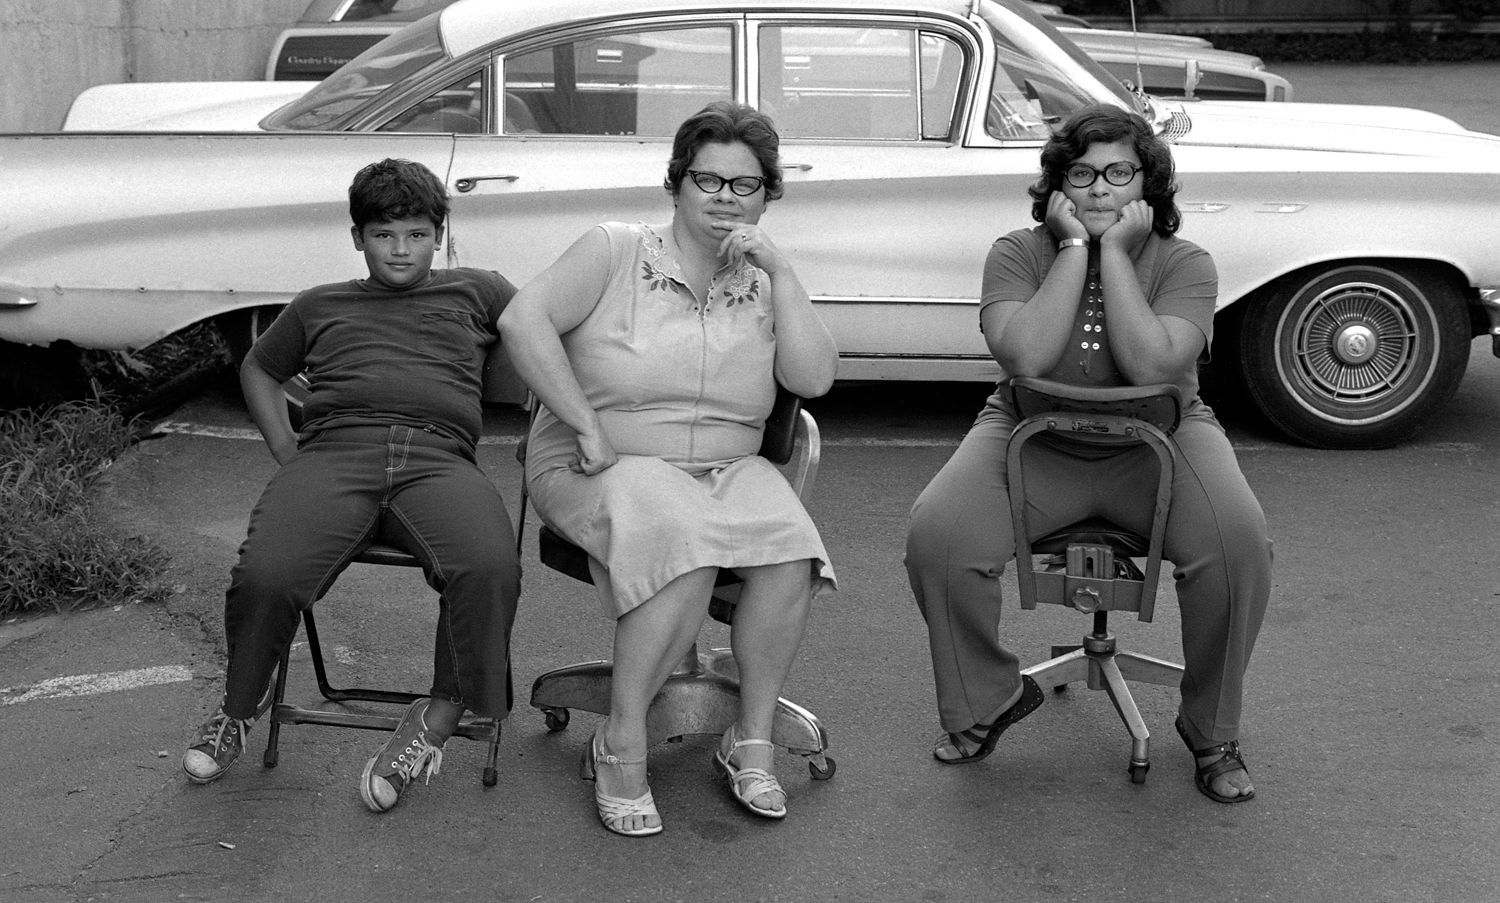 Family sitting on chairs in parking lot